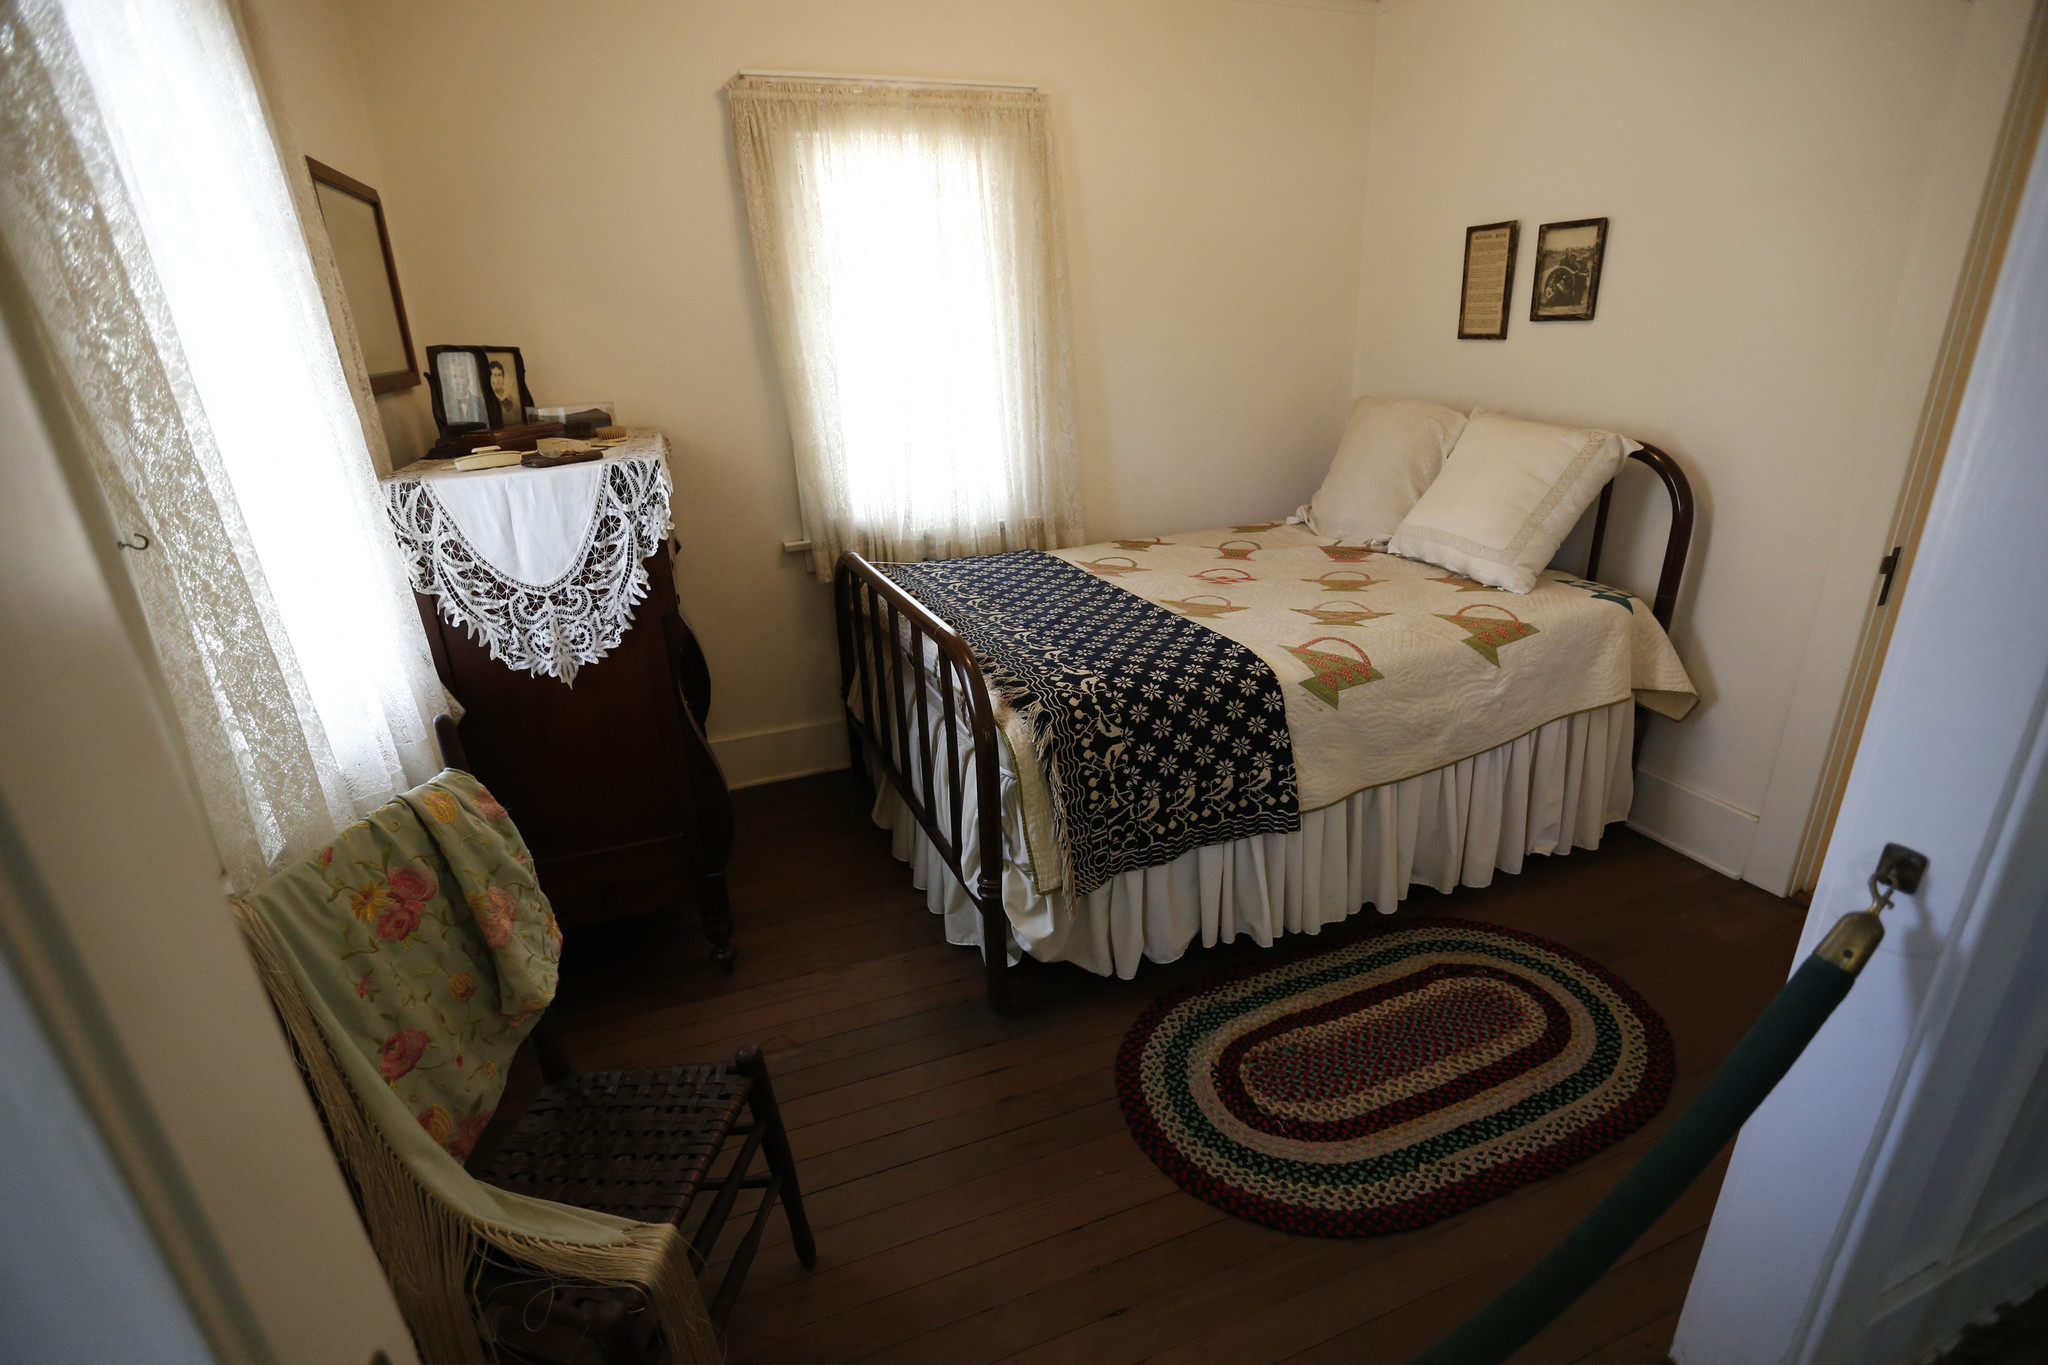 The bedroom where President Nixon was born at the Richard Nixon Birthplace located on the grounds of the Richard Nixon Library and Museum.